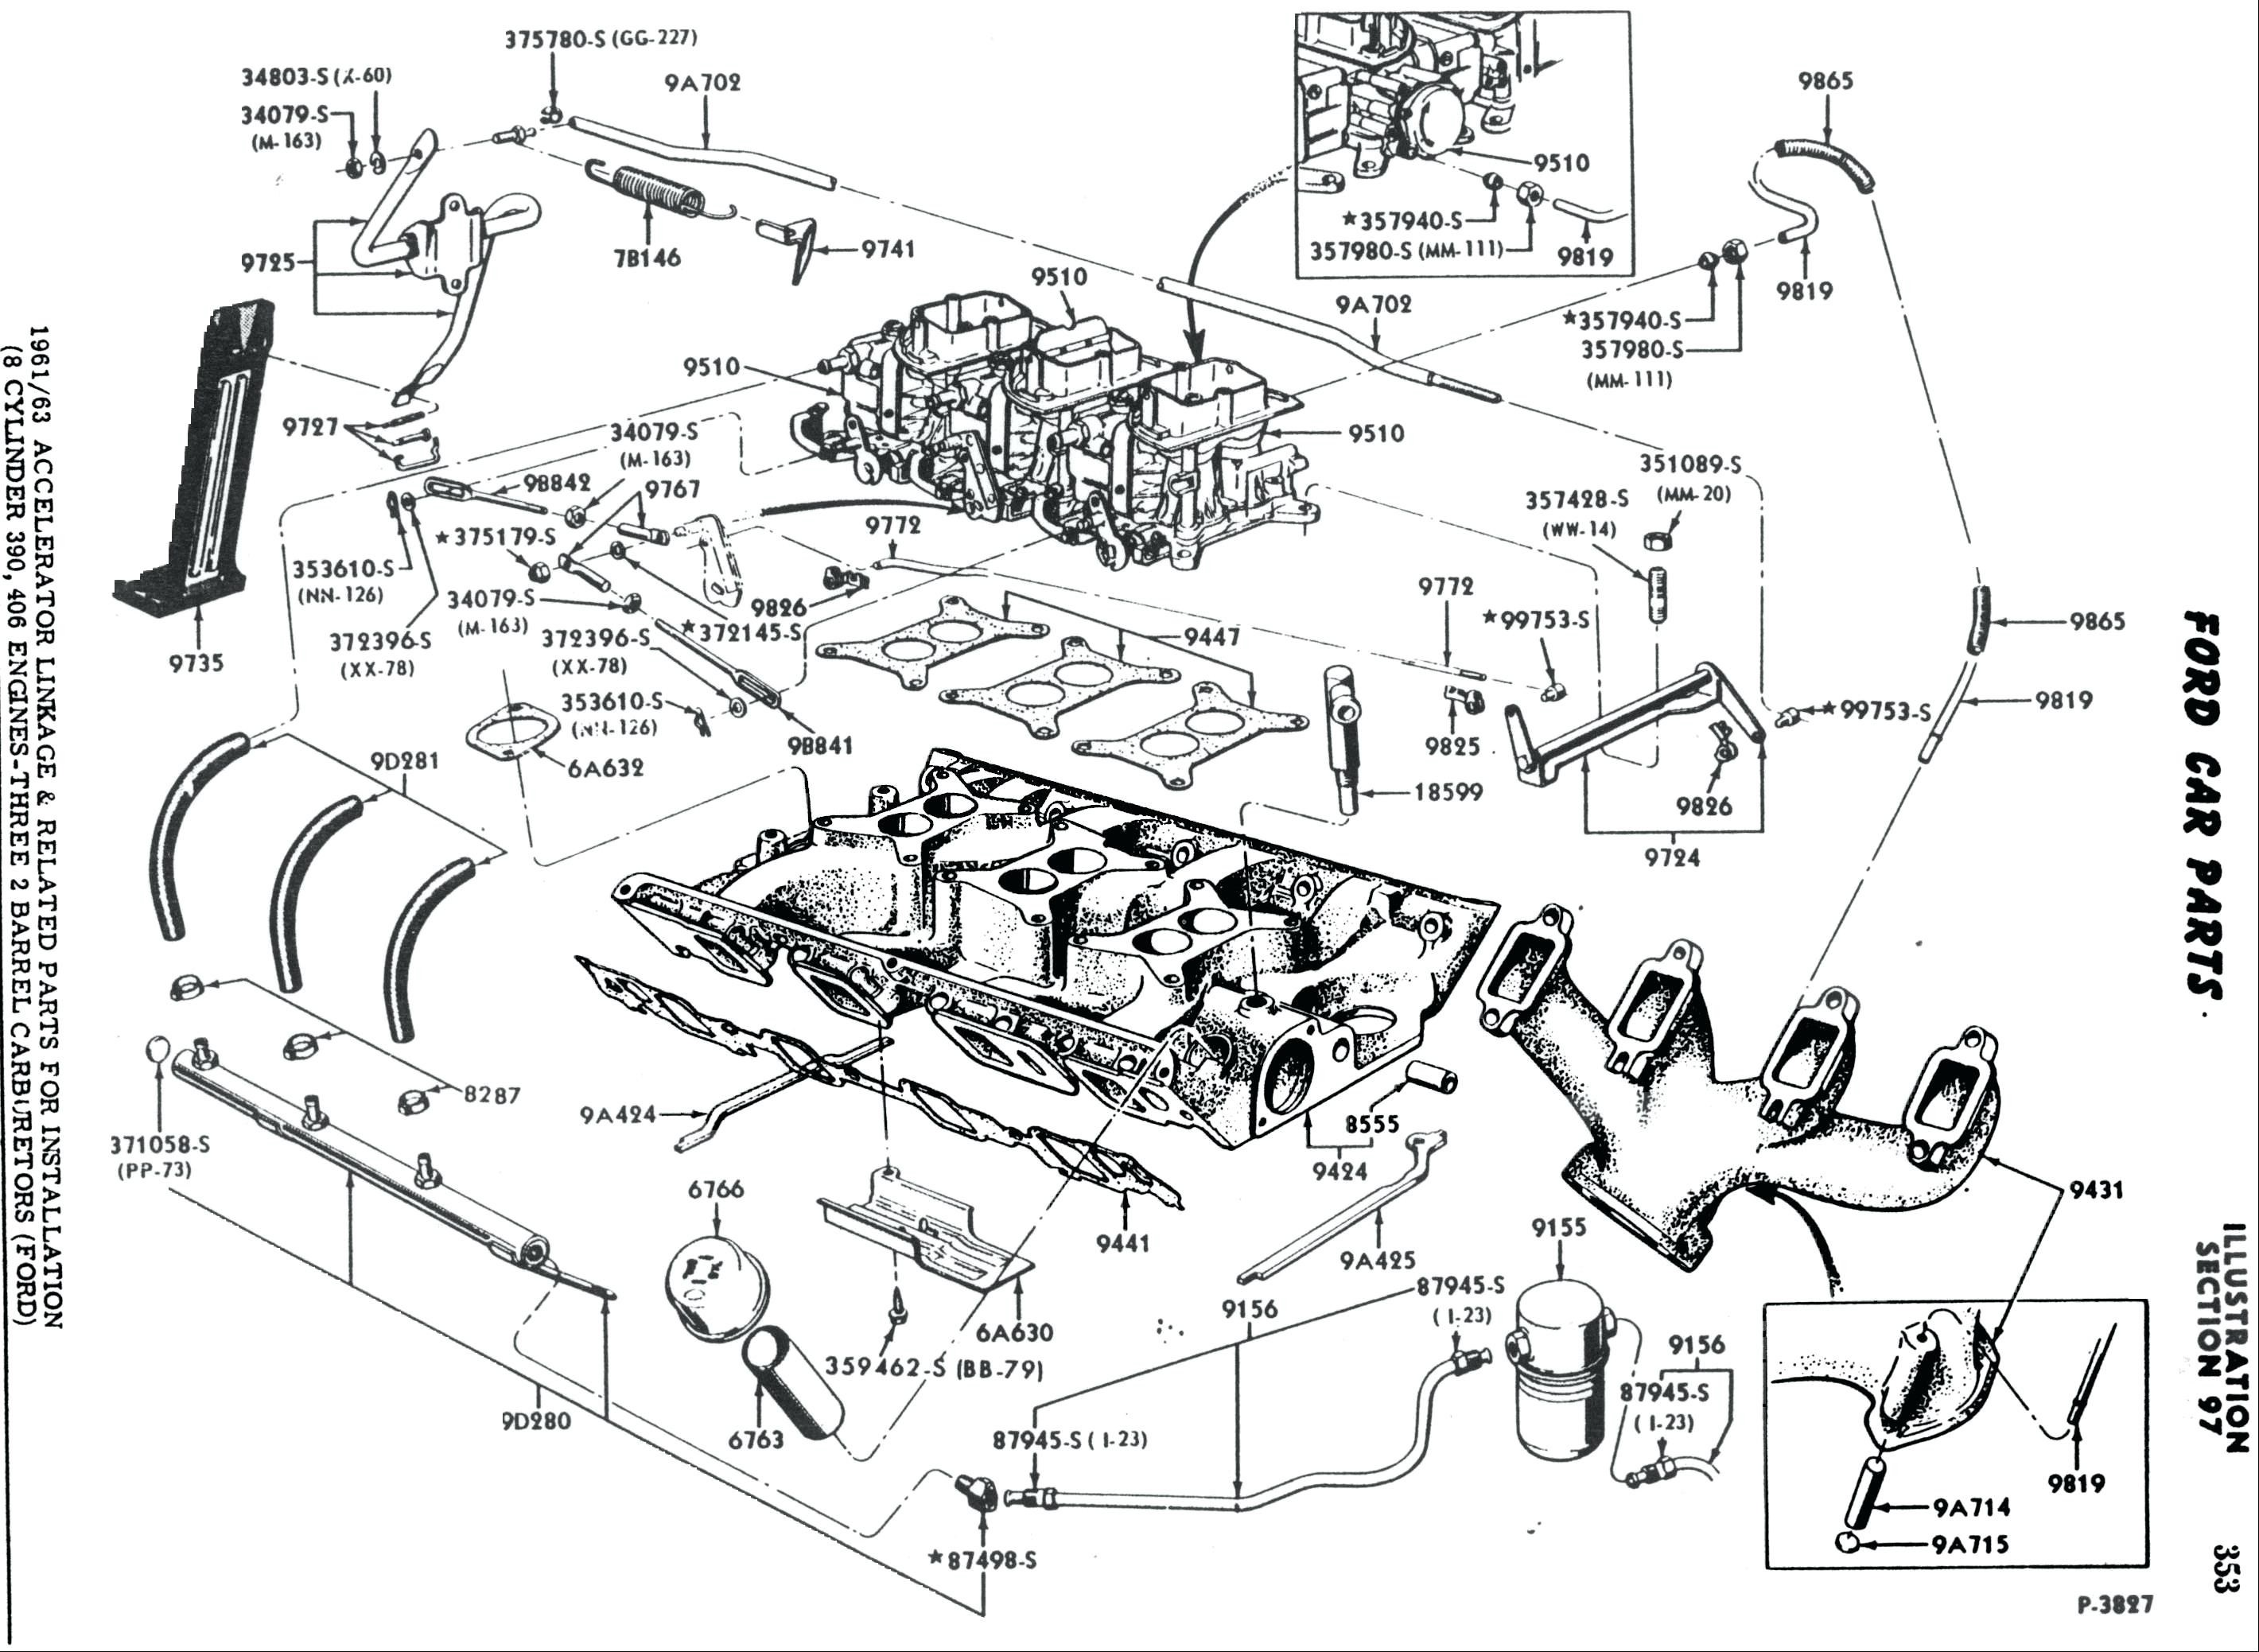 Automobile Parts Diagram Wrg 7679] Car Engine Schematics Of Automobile Parts Diagram 30 Honda Xr100 Parts – Car Parts List with